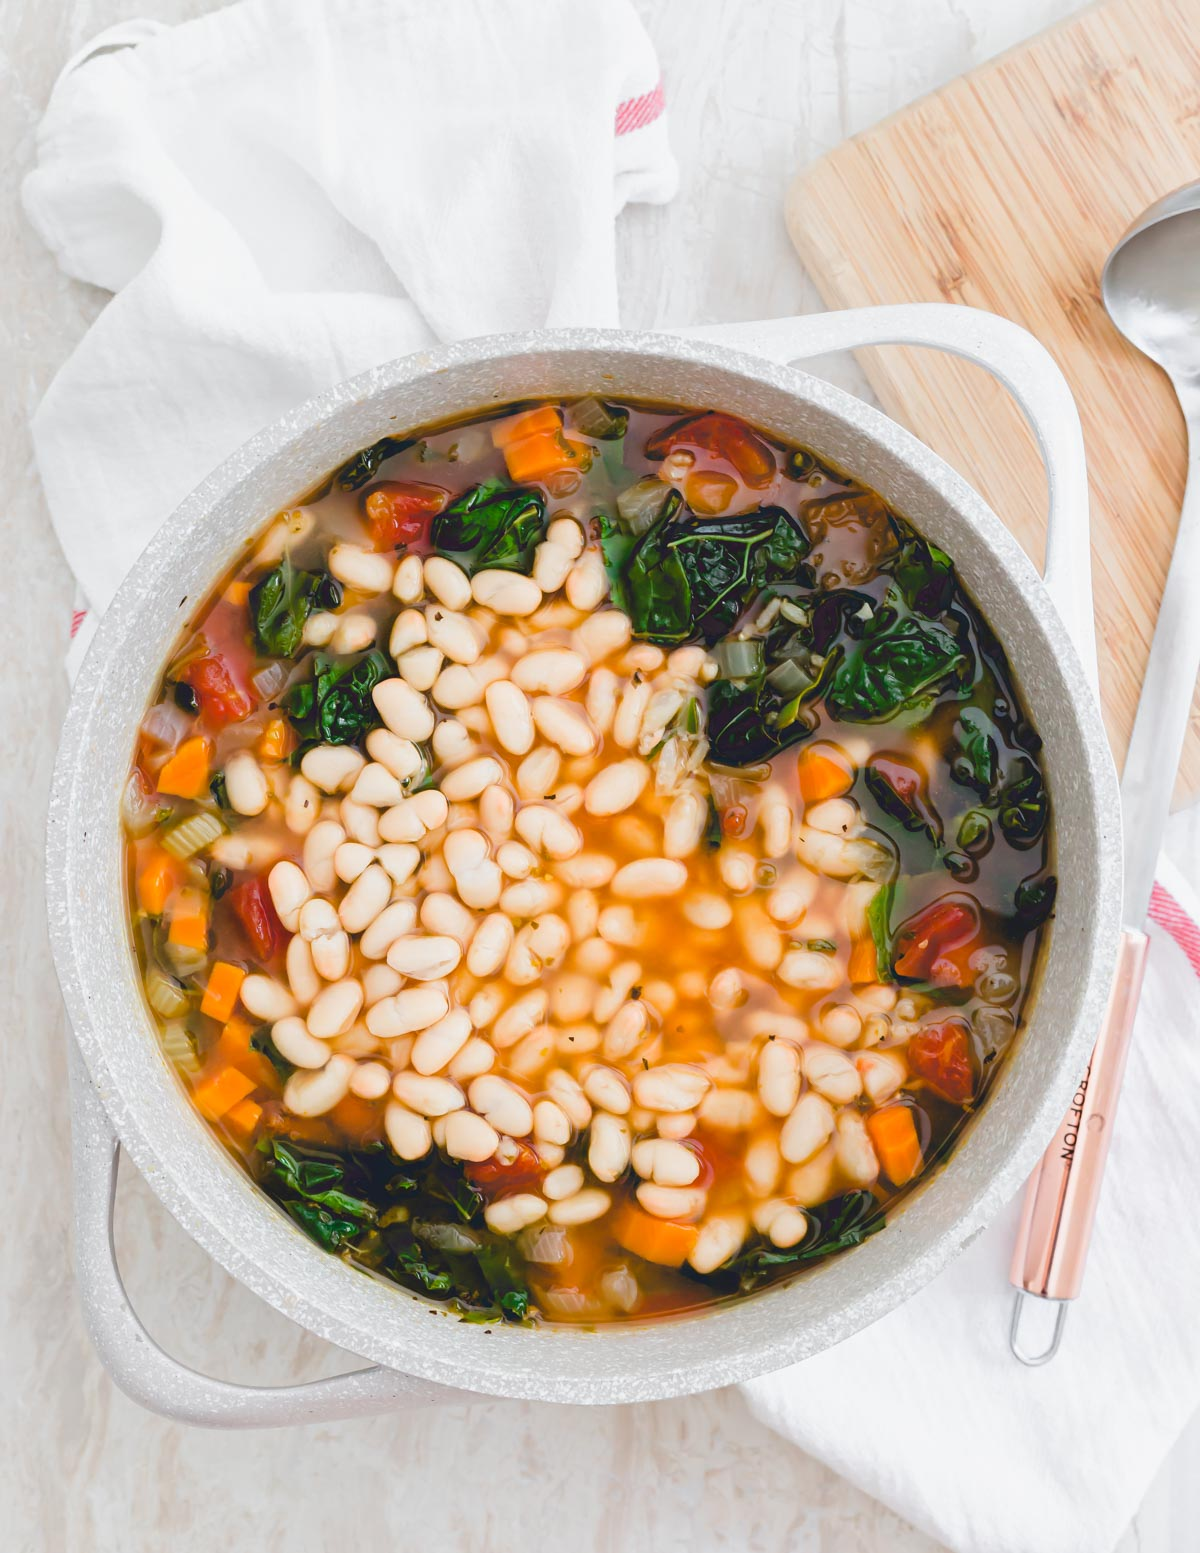 A pot of Tuscan kale soup with added white beans and ladle on the side.